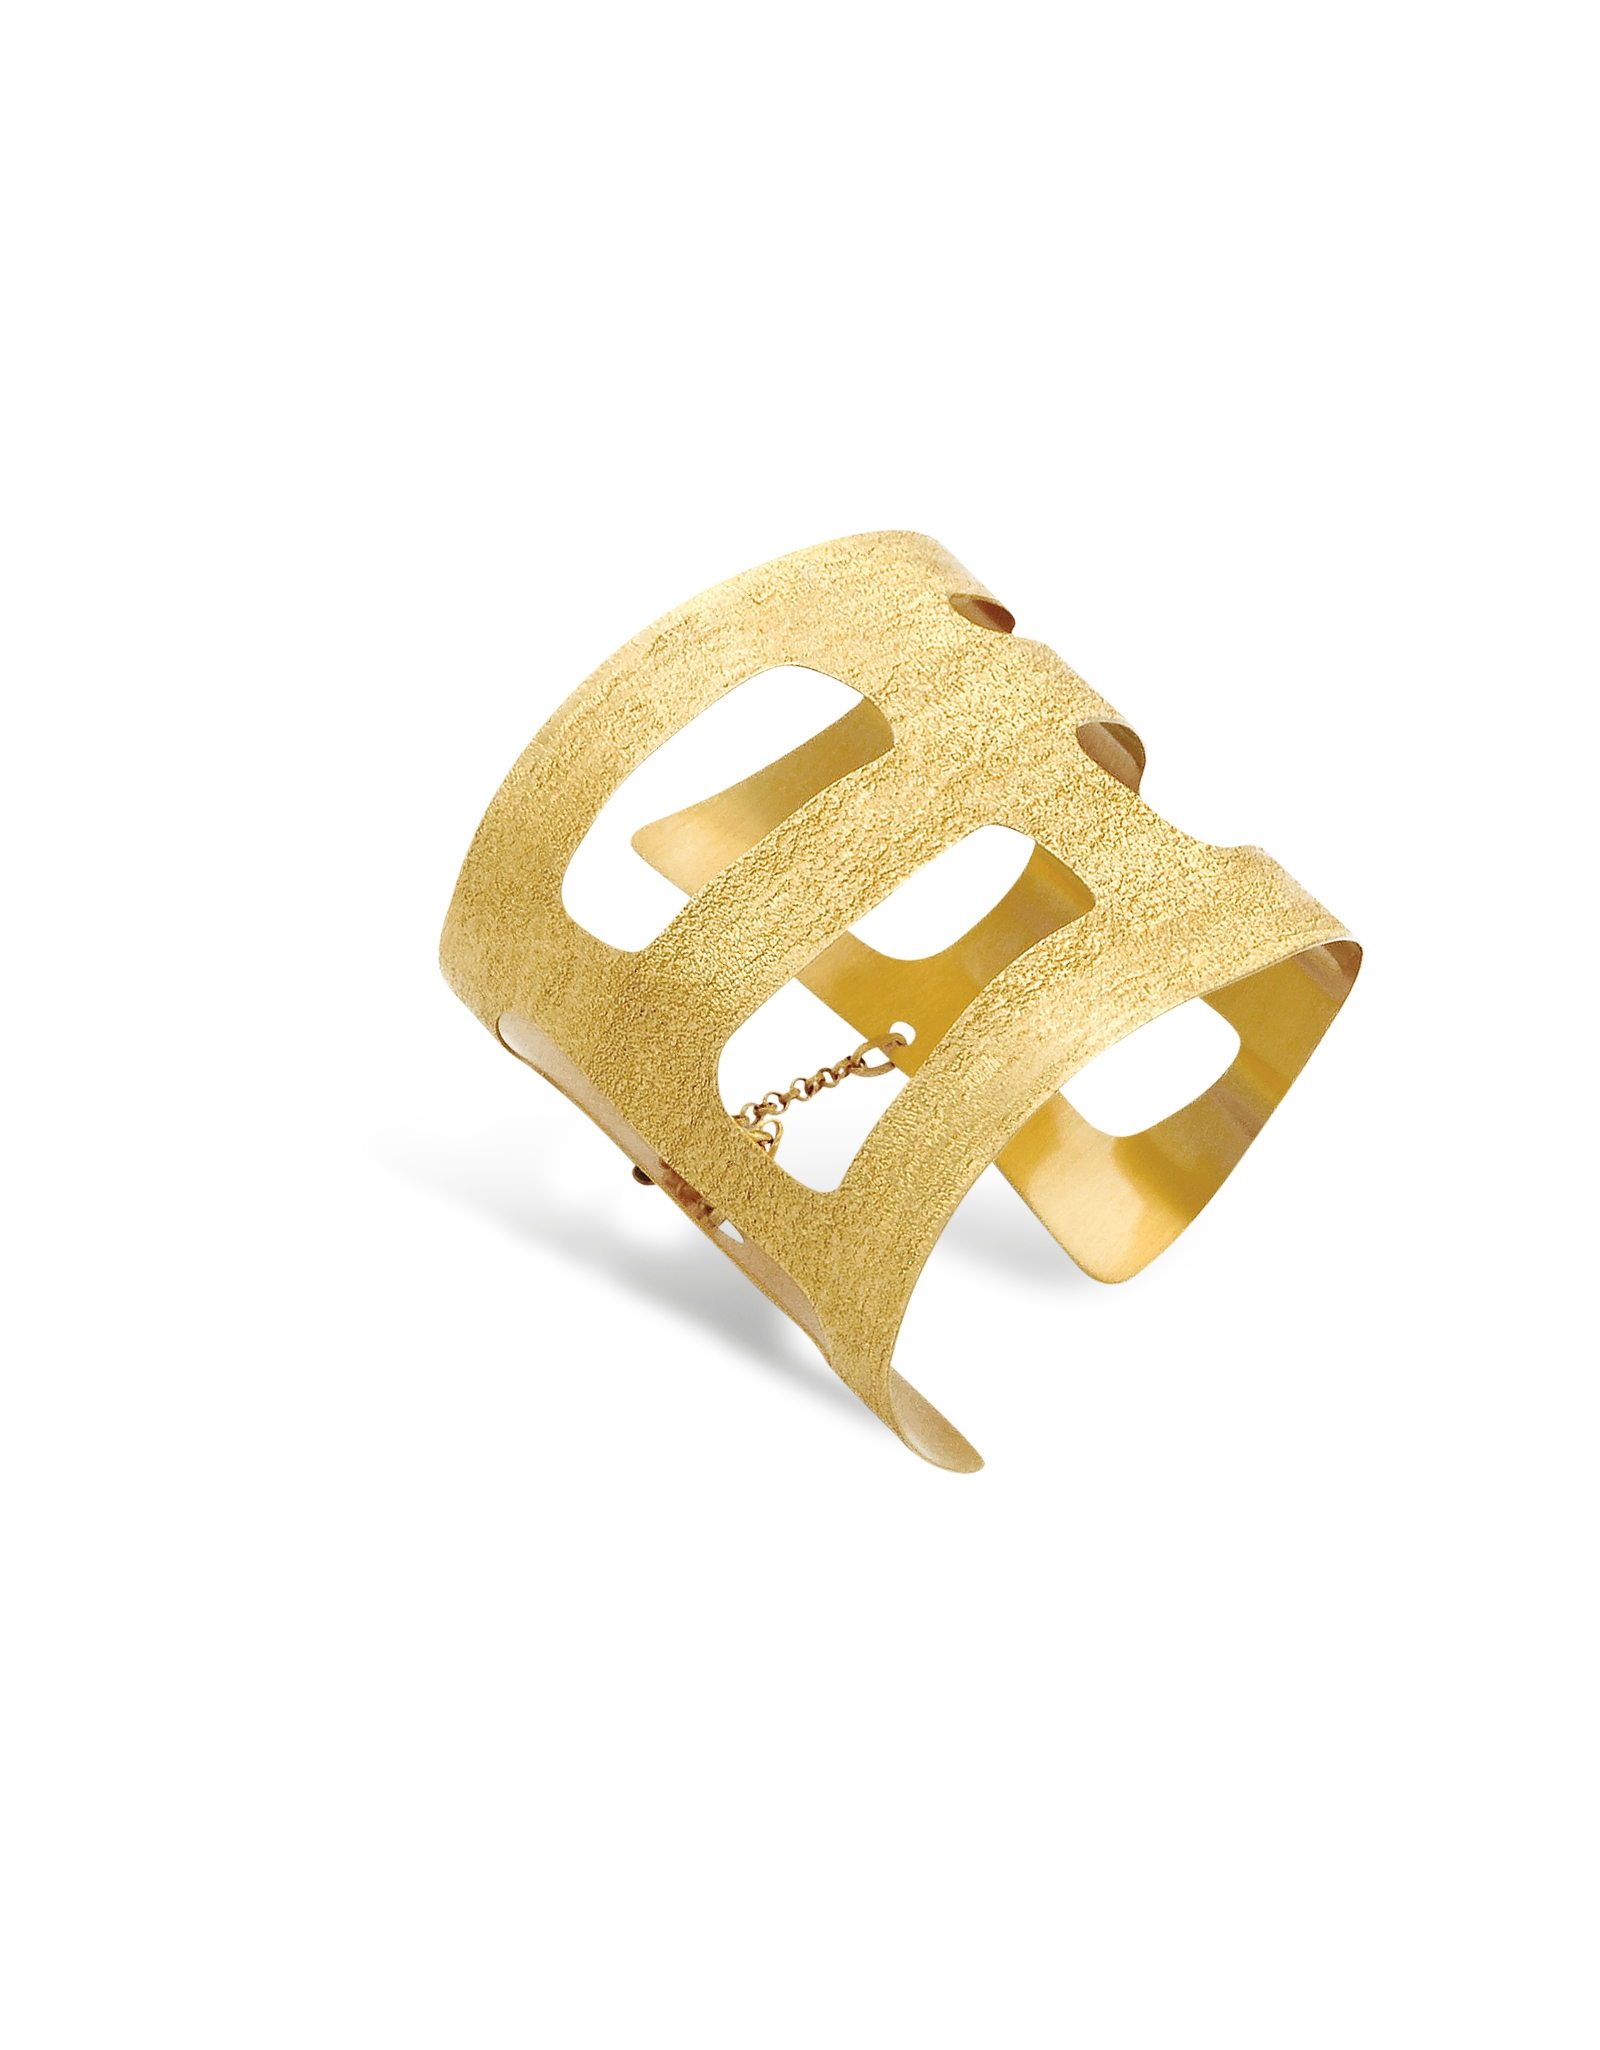 Stefano Patriarchi Gold Plated Hand Bracelet